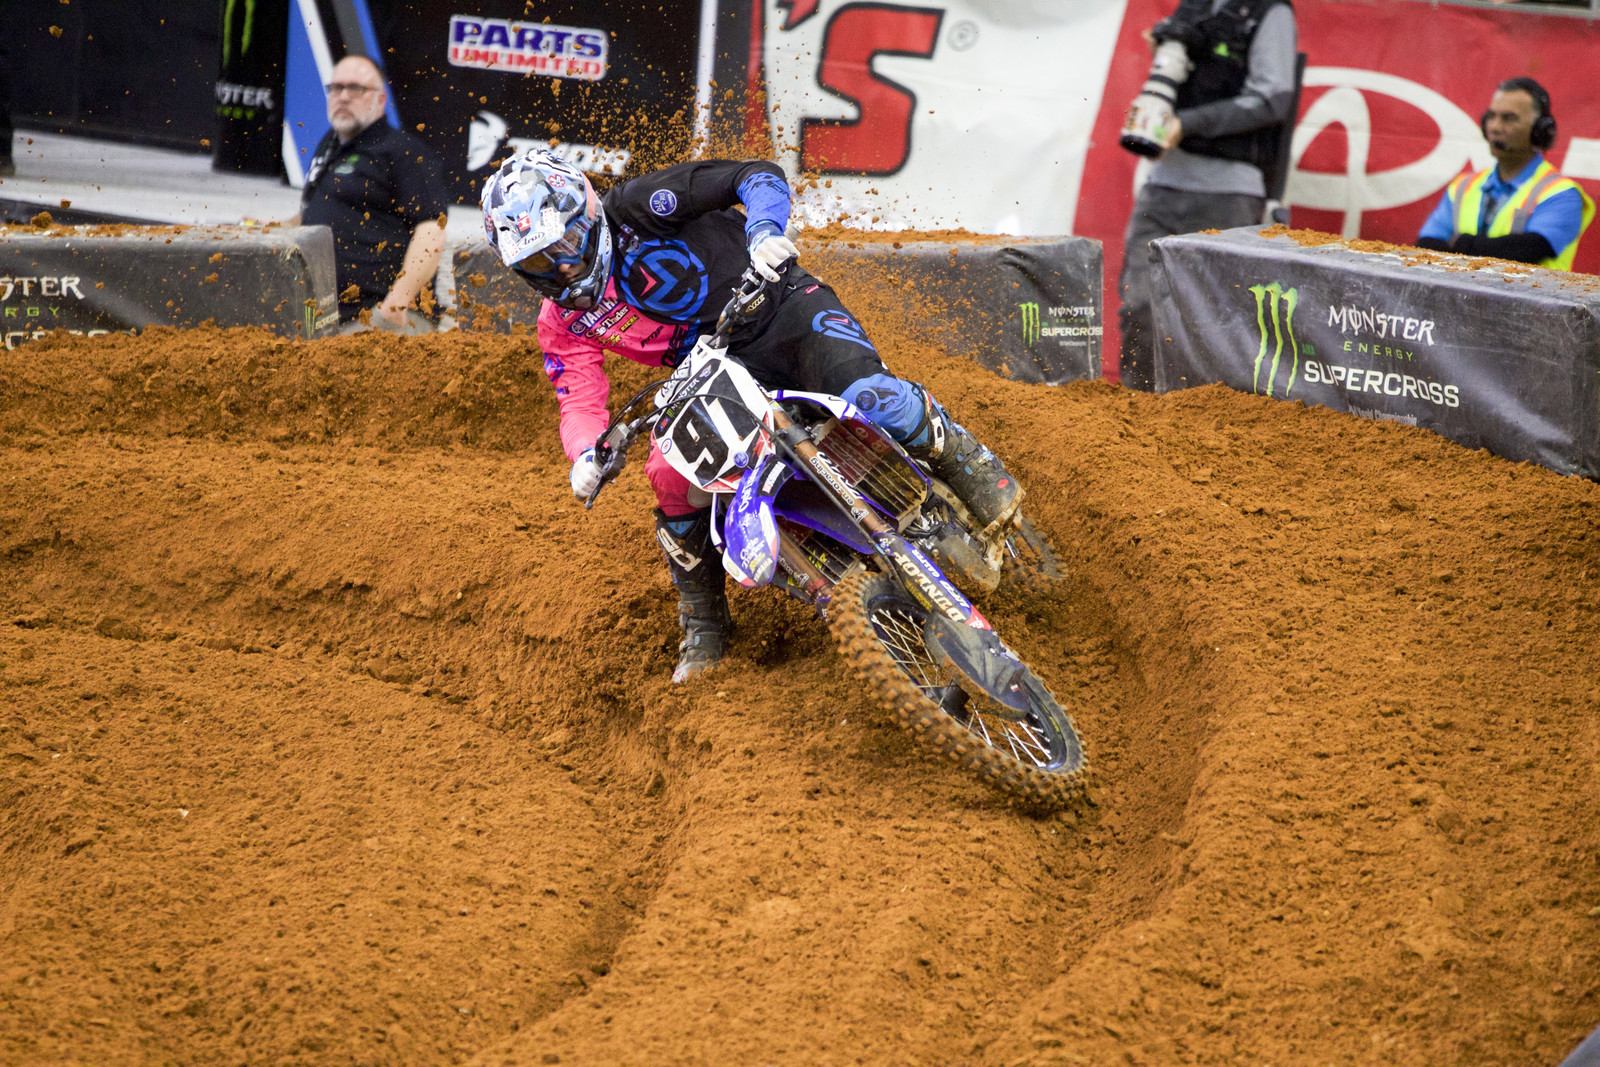 Alex Ray to Fill In for Cooper Webb at Monster Energy/Yamaha Factory Racing